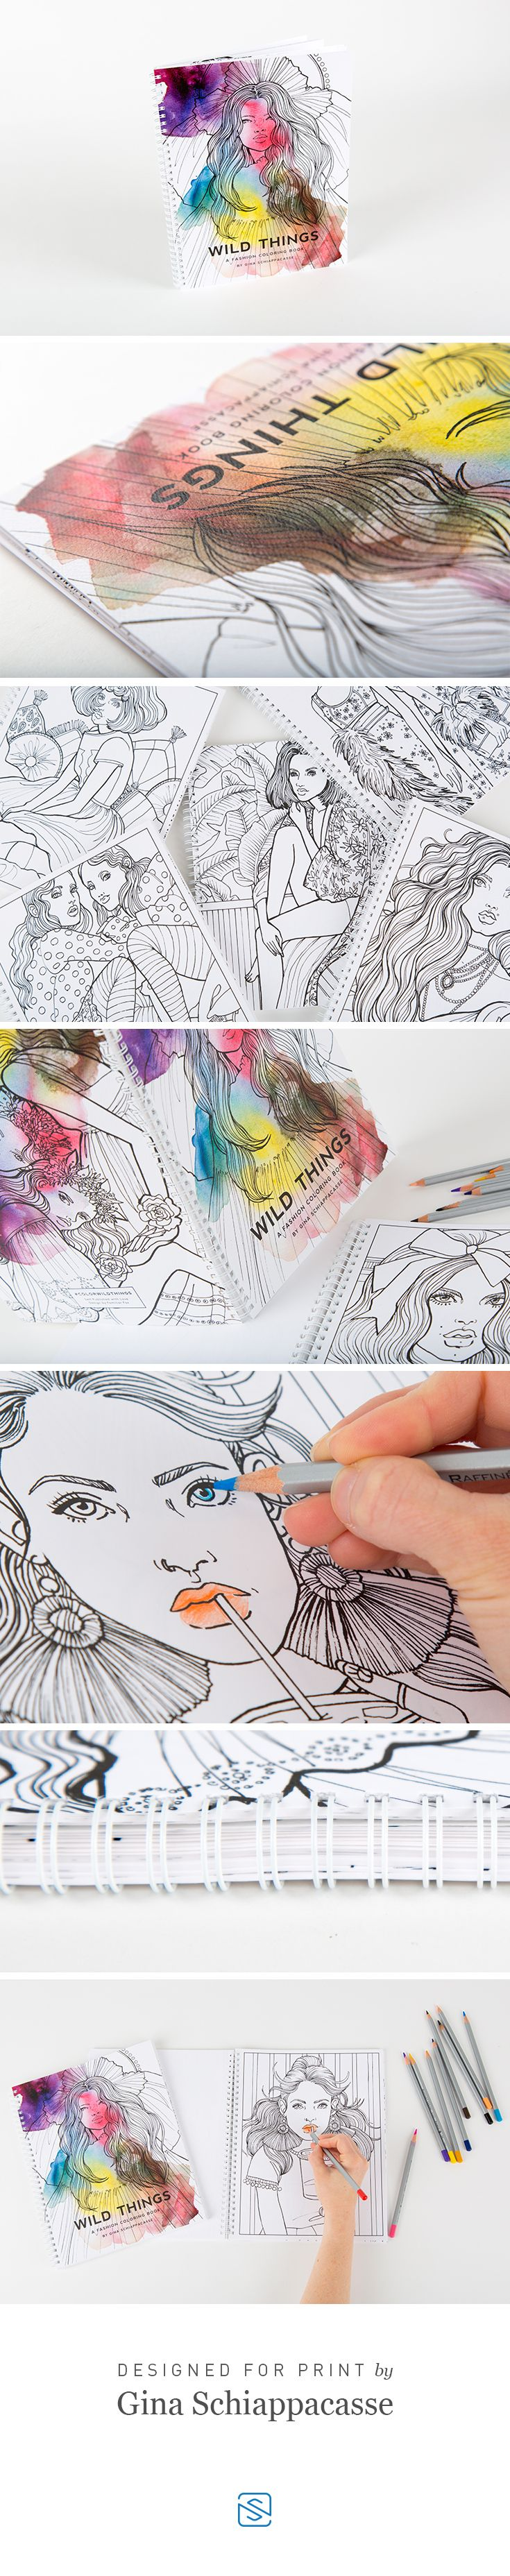 """Wire Coil Coloring Book Graphic Design by Gina Schiappacasse 